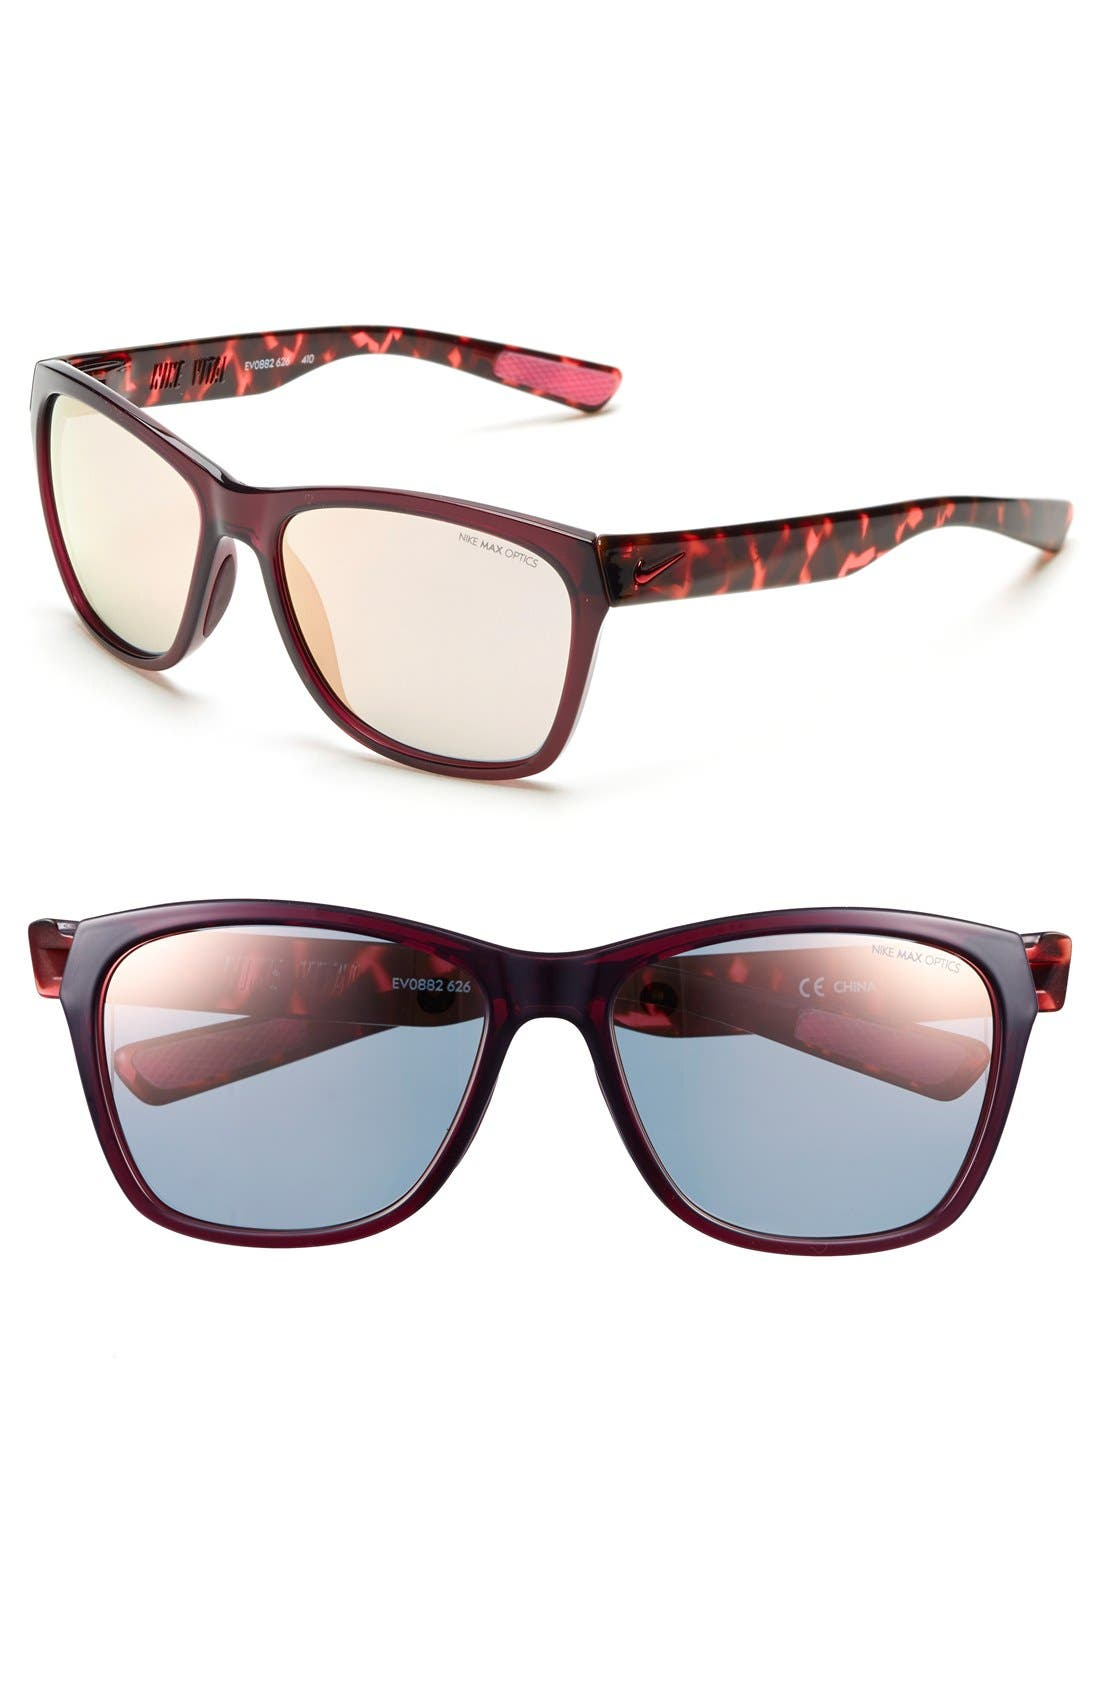 'Vital' 58mm Sunglasses,                         Main,                         color, Burgundy/ Hyper Pink Tortoise